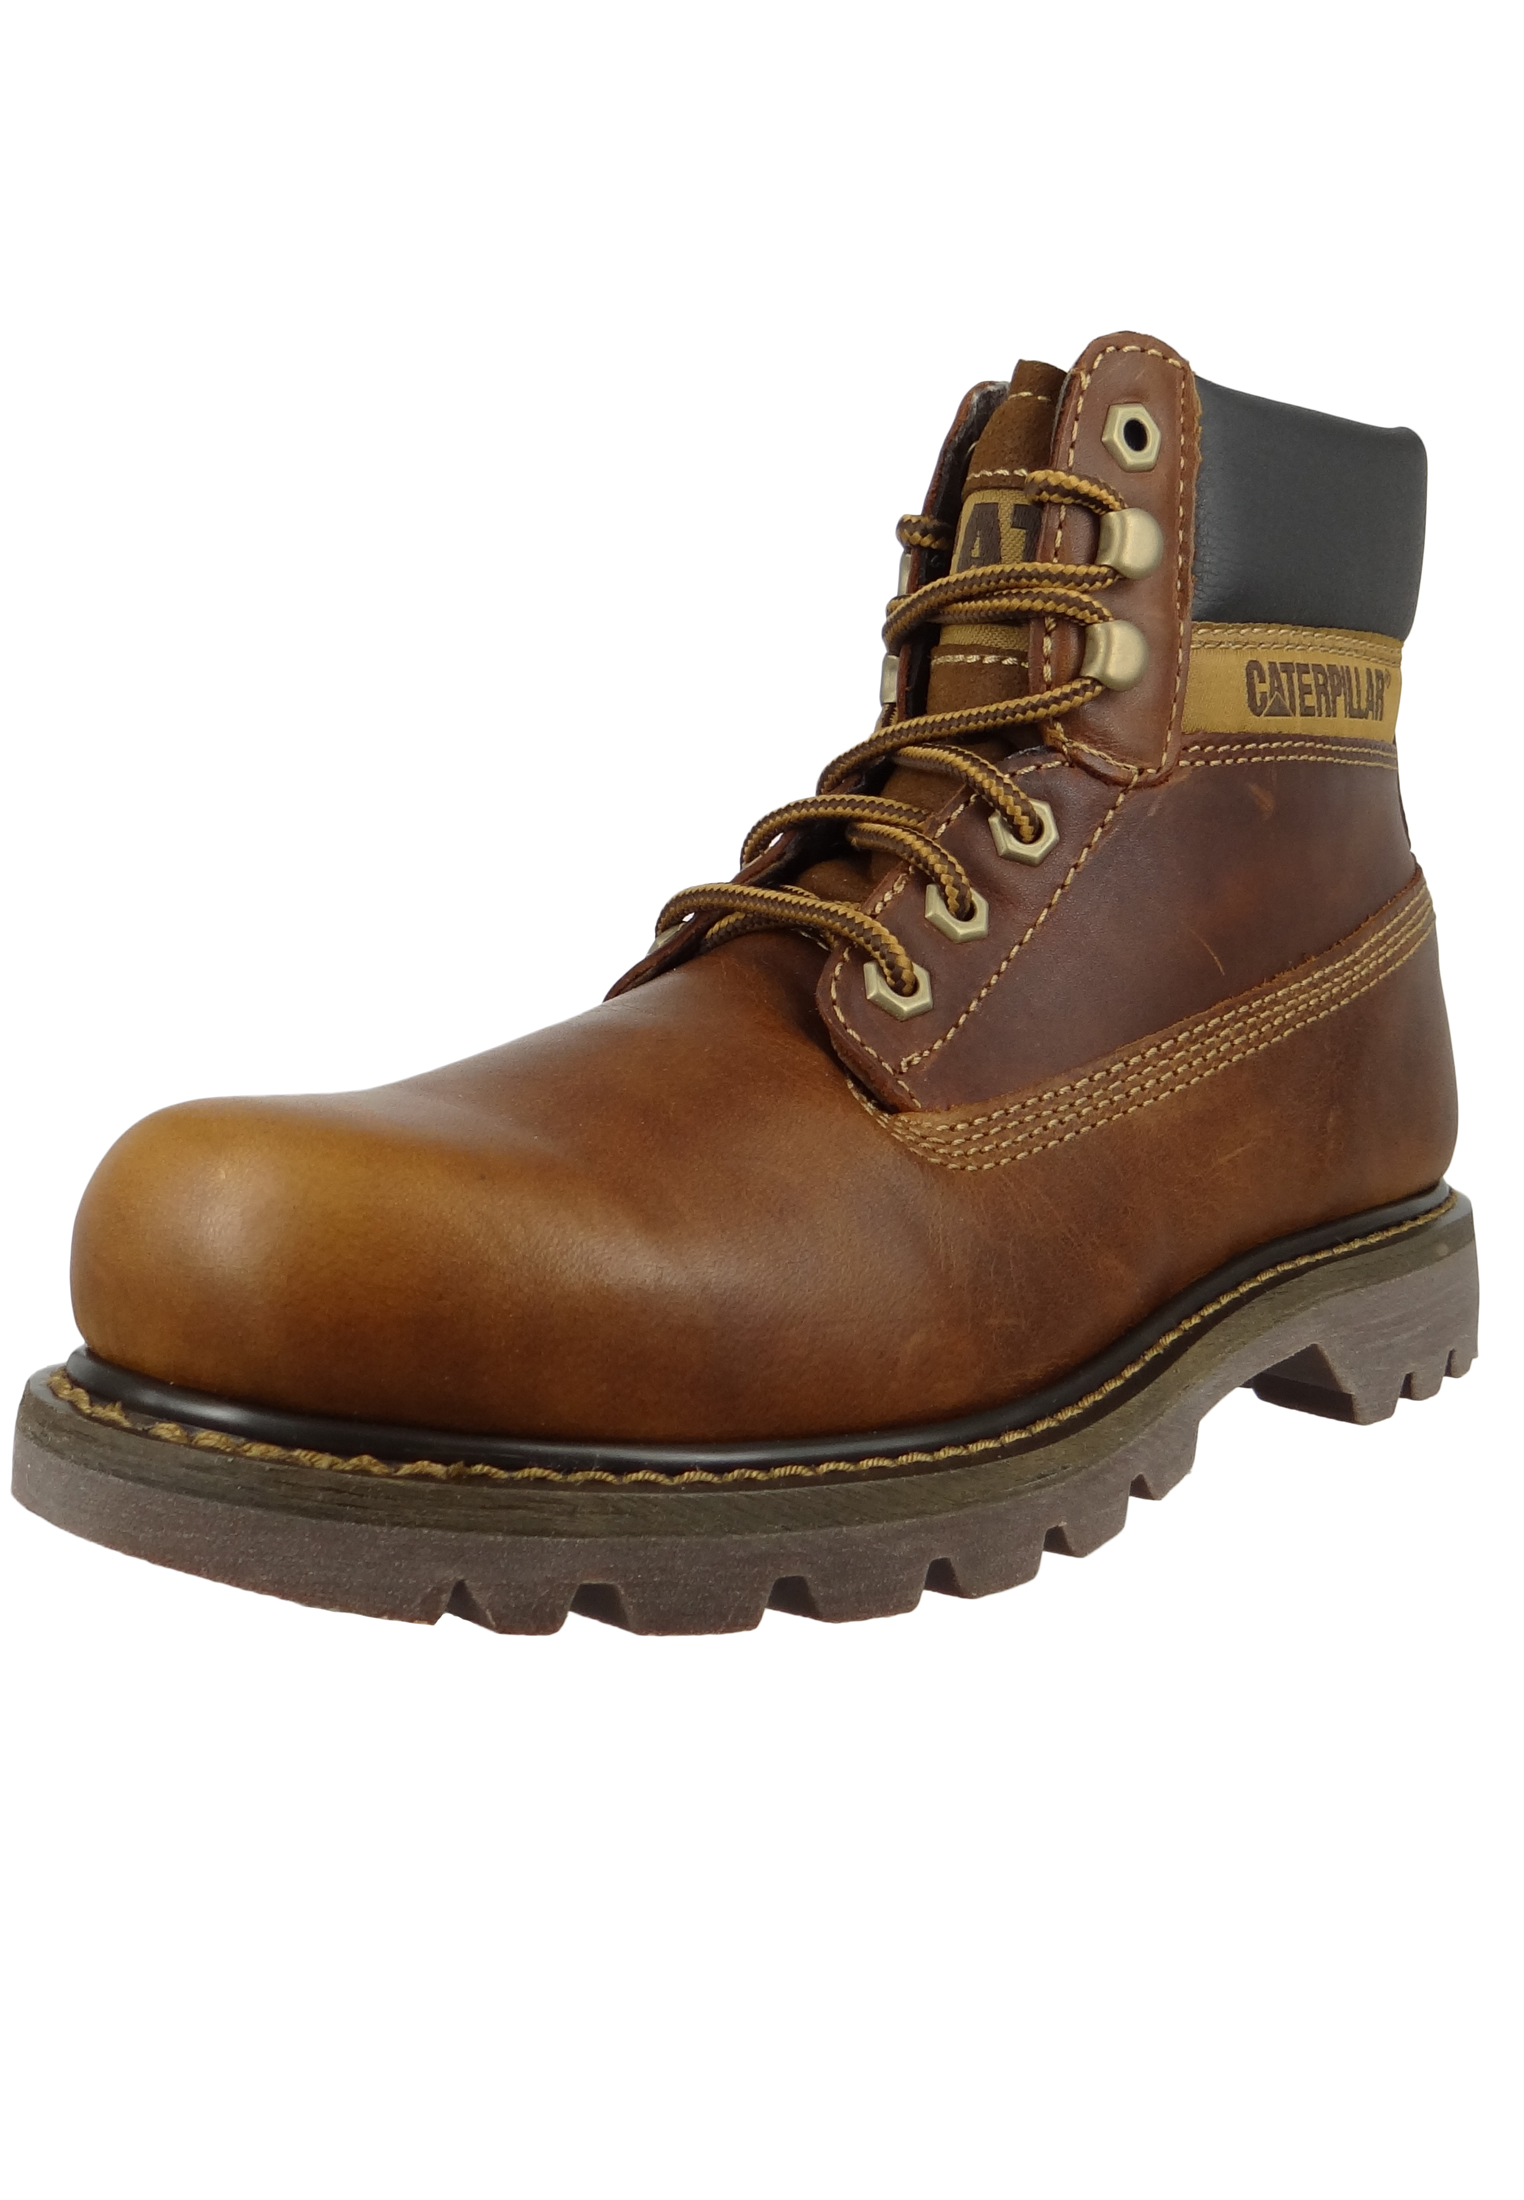 3c304fa16c03 CAT Caterpillar Schuhe Leder Stiefel Colorado Golden Braun P720263 ...